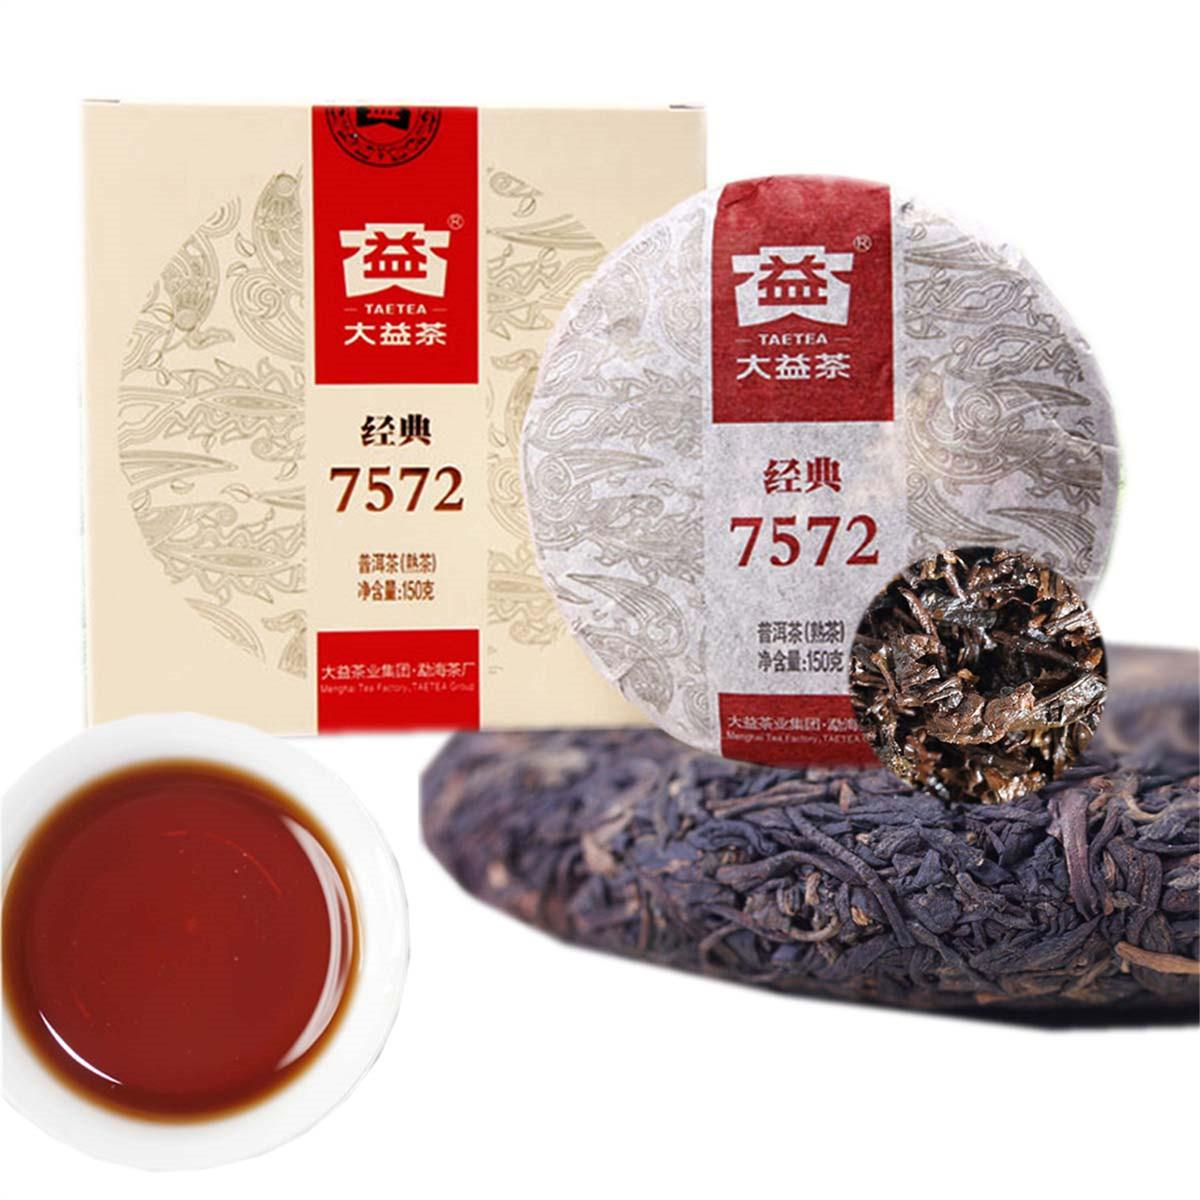 357g Yunnan Dayi 7572 Classic Boxed Ripe Puer Tea Cake Organic Natural Pu'er Oldest Tree Cooked Puer Black Puerh Preference Green Food